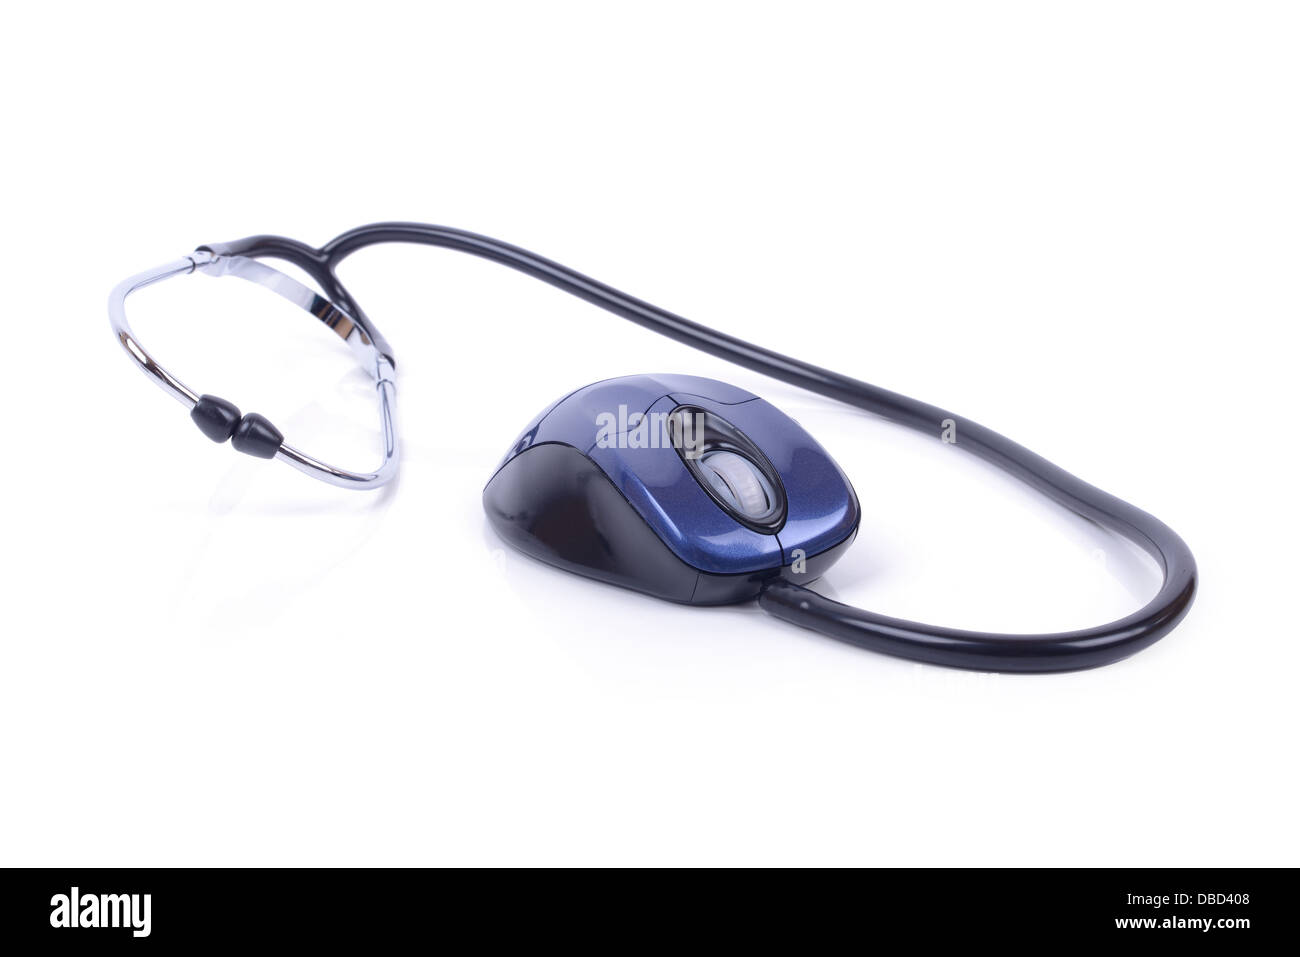 online medical exam mouse and stethoscope isolated on white with clipping path - Stock Image